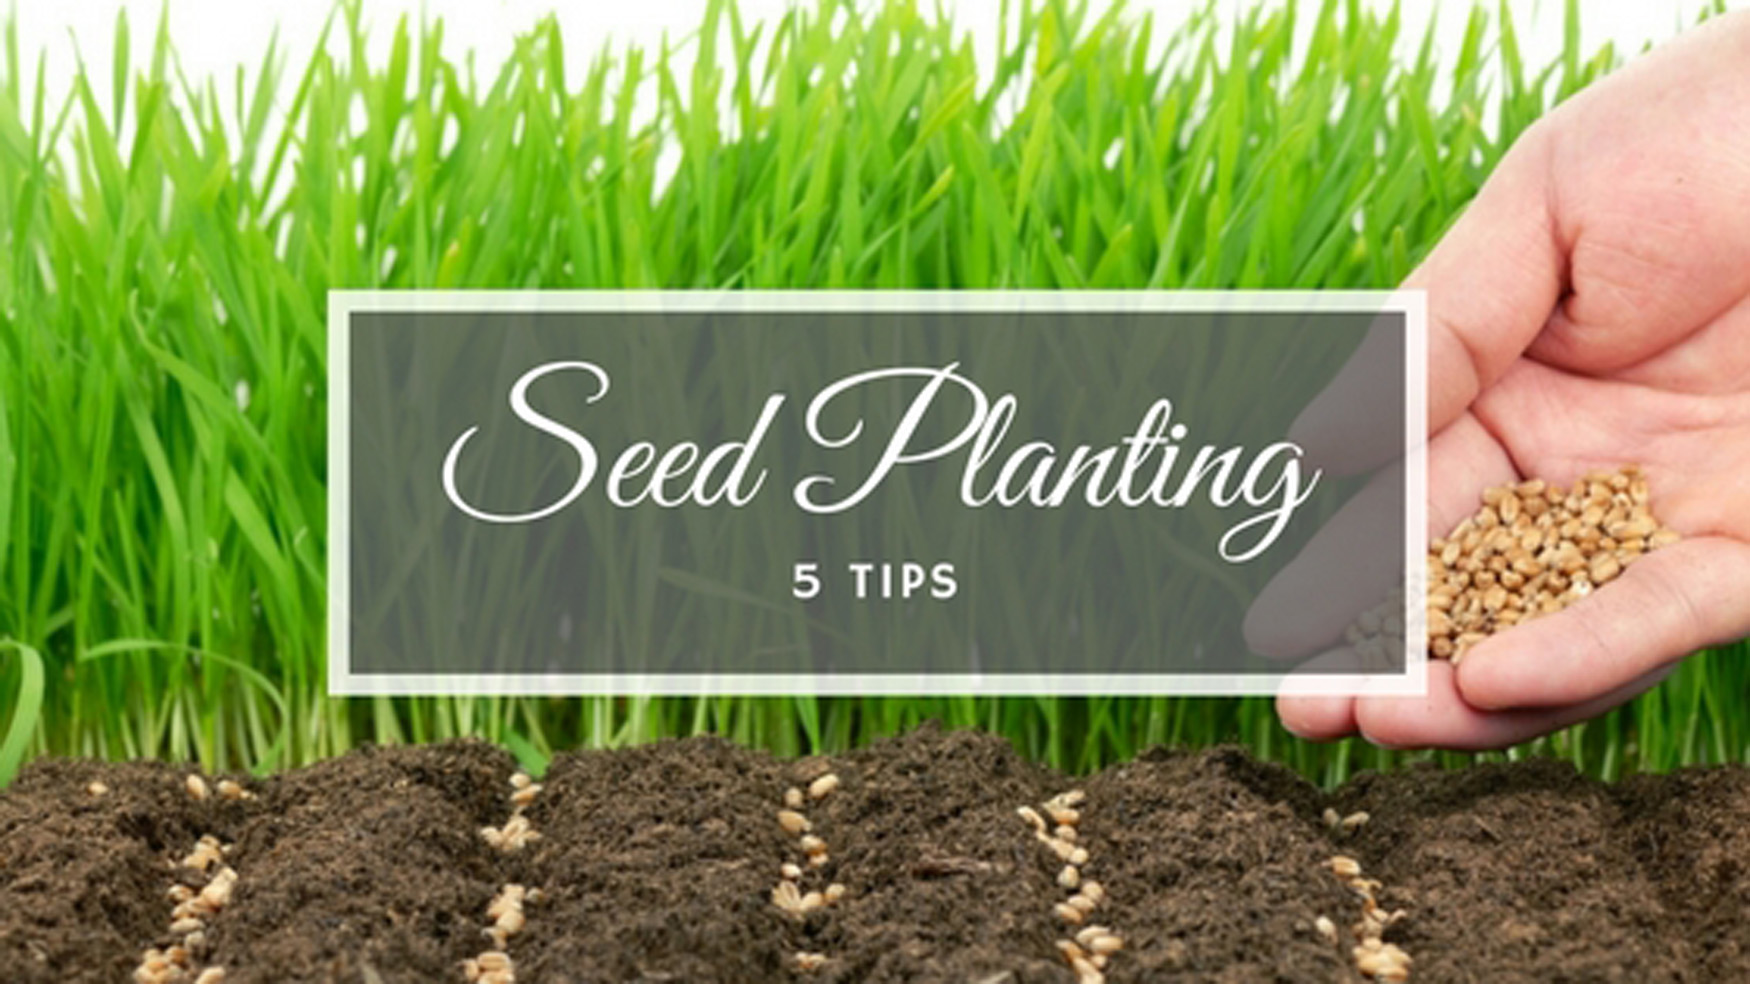 5 tips for seed planting